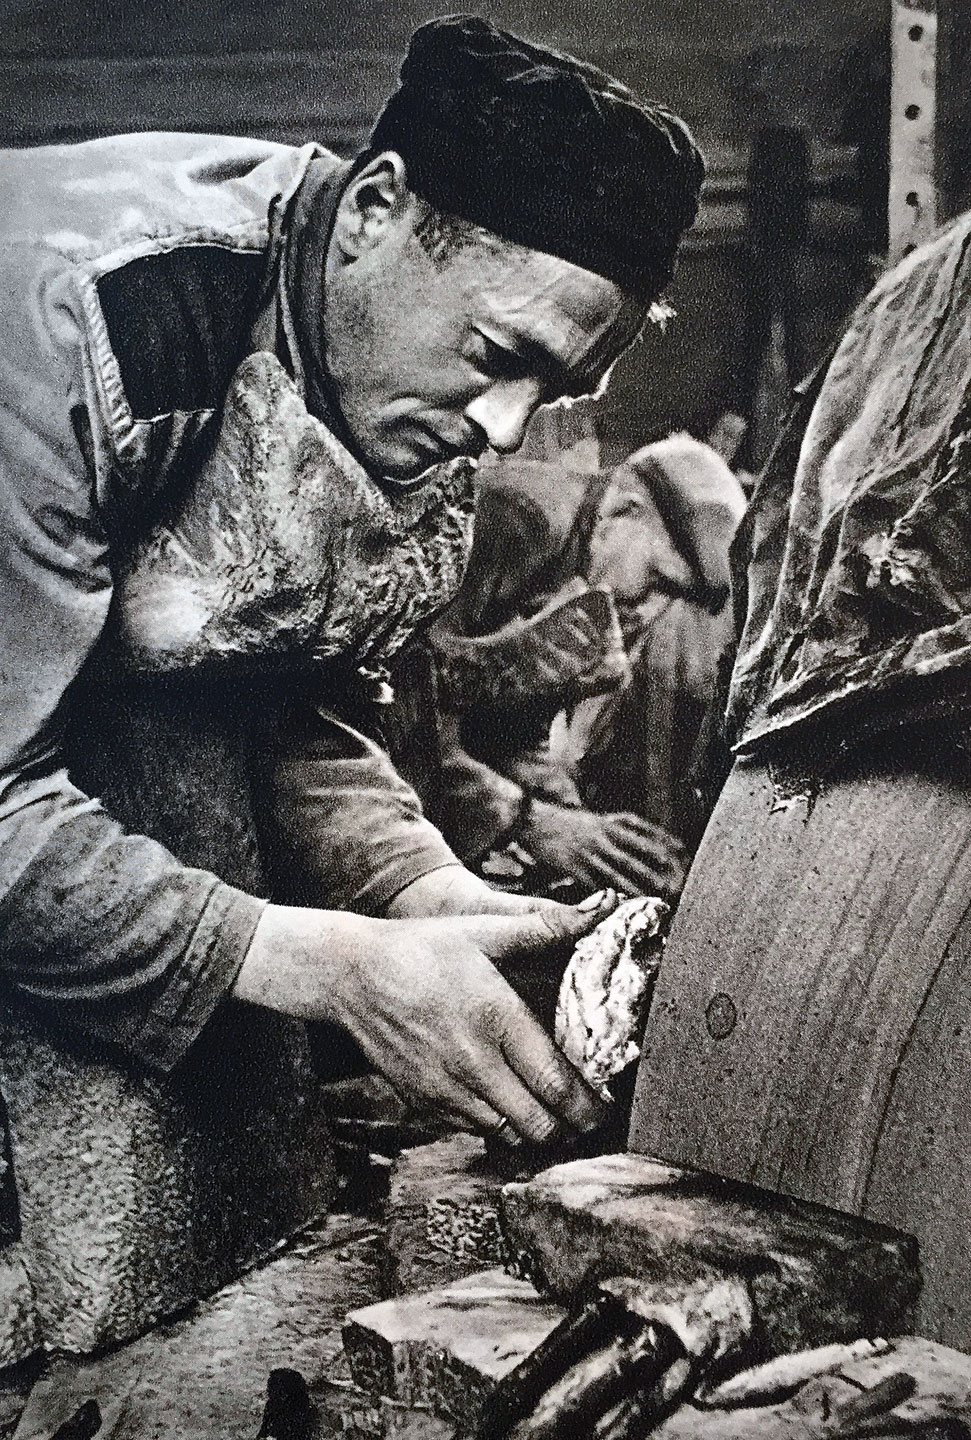 IDAR-OBERSTEIN:  Stonecutter at work. Stonecutting was hard work, abetted by having to lie down and push against the grindstone. Young workers risked a deformed chest. In general, the lifespan of the workers was short. Photograph from early 1900s.